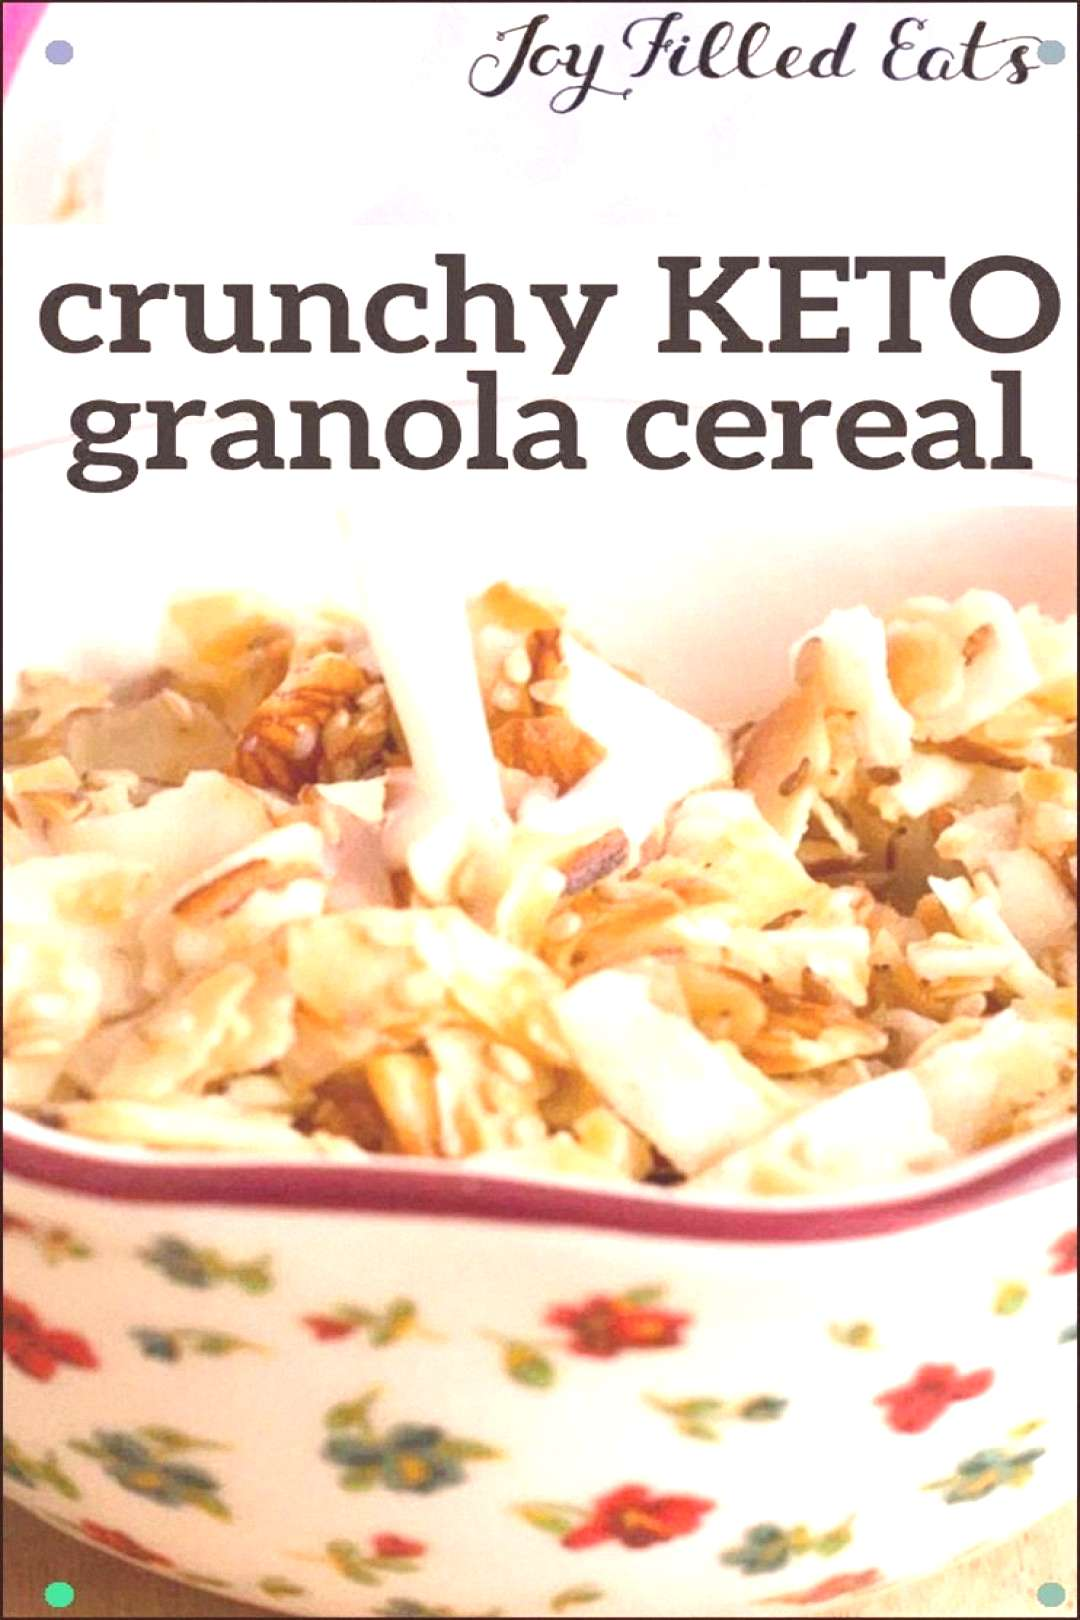 This Easy Keto Granola Recipe Has The Perfect Crunch With Just Enough Sweetness To Sweeten Your Mor